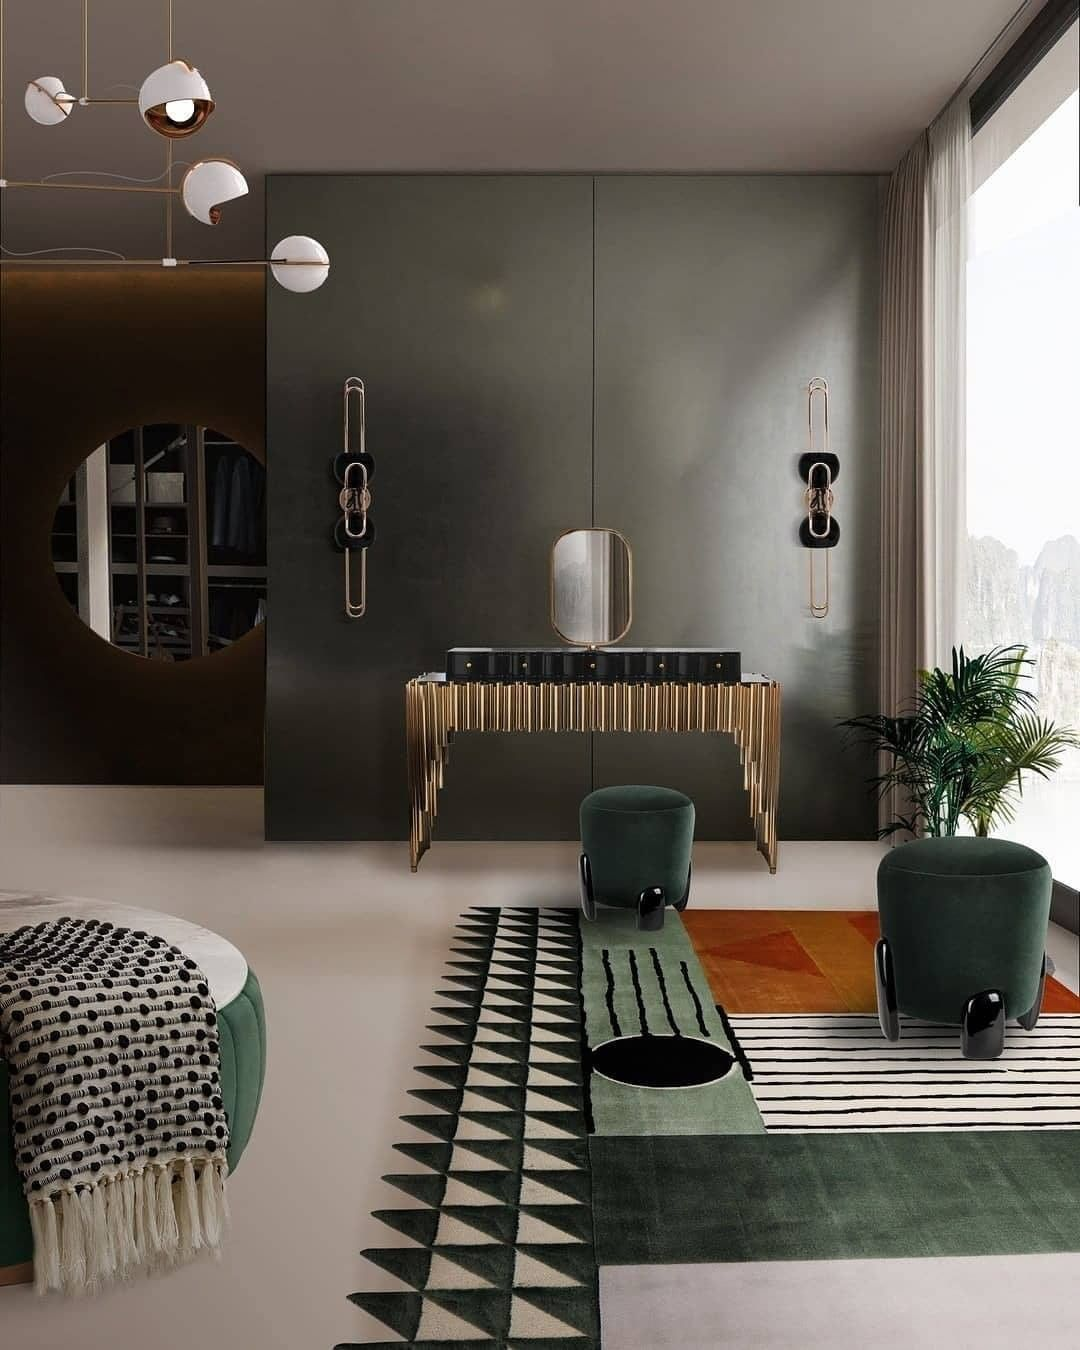 MID-CENTURY LIGHTNING DESIGN THAT CERTAINLY INSPIRES YOU